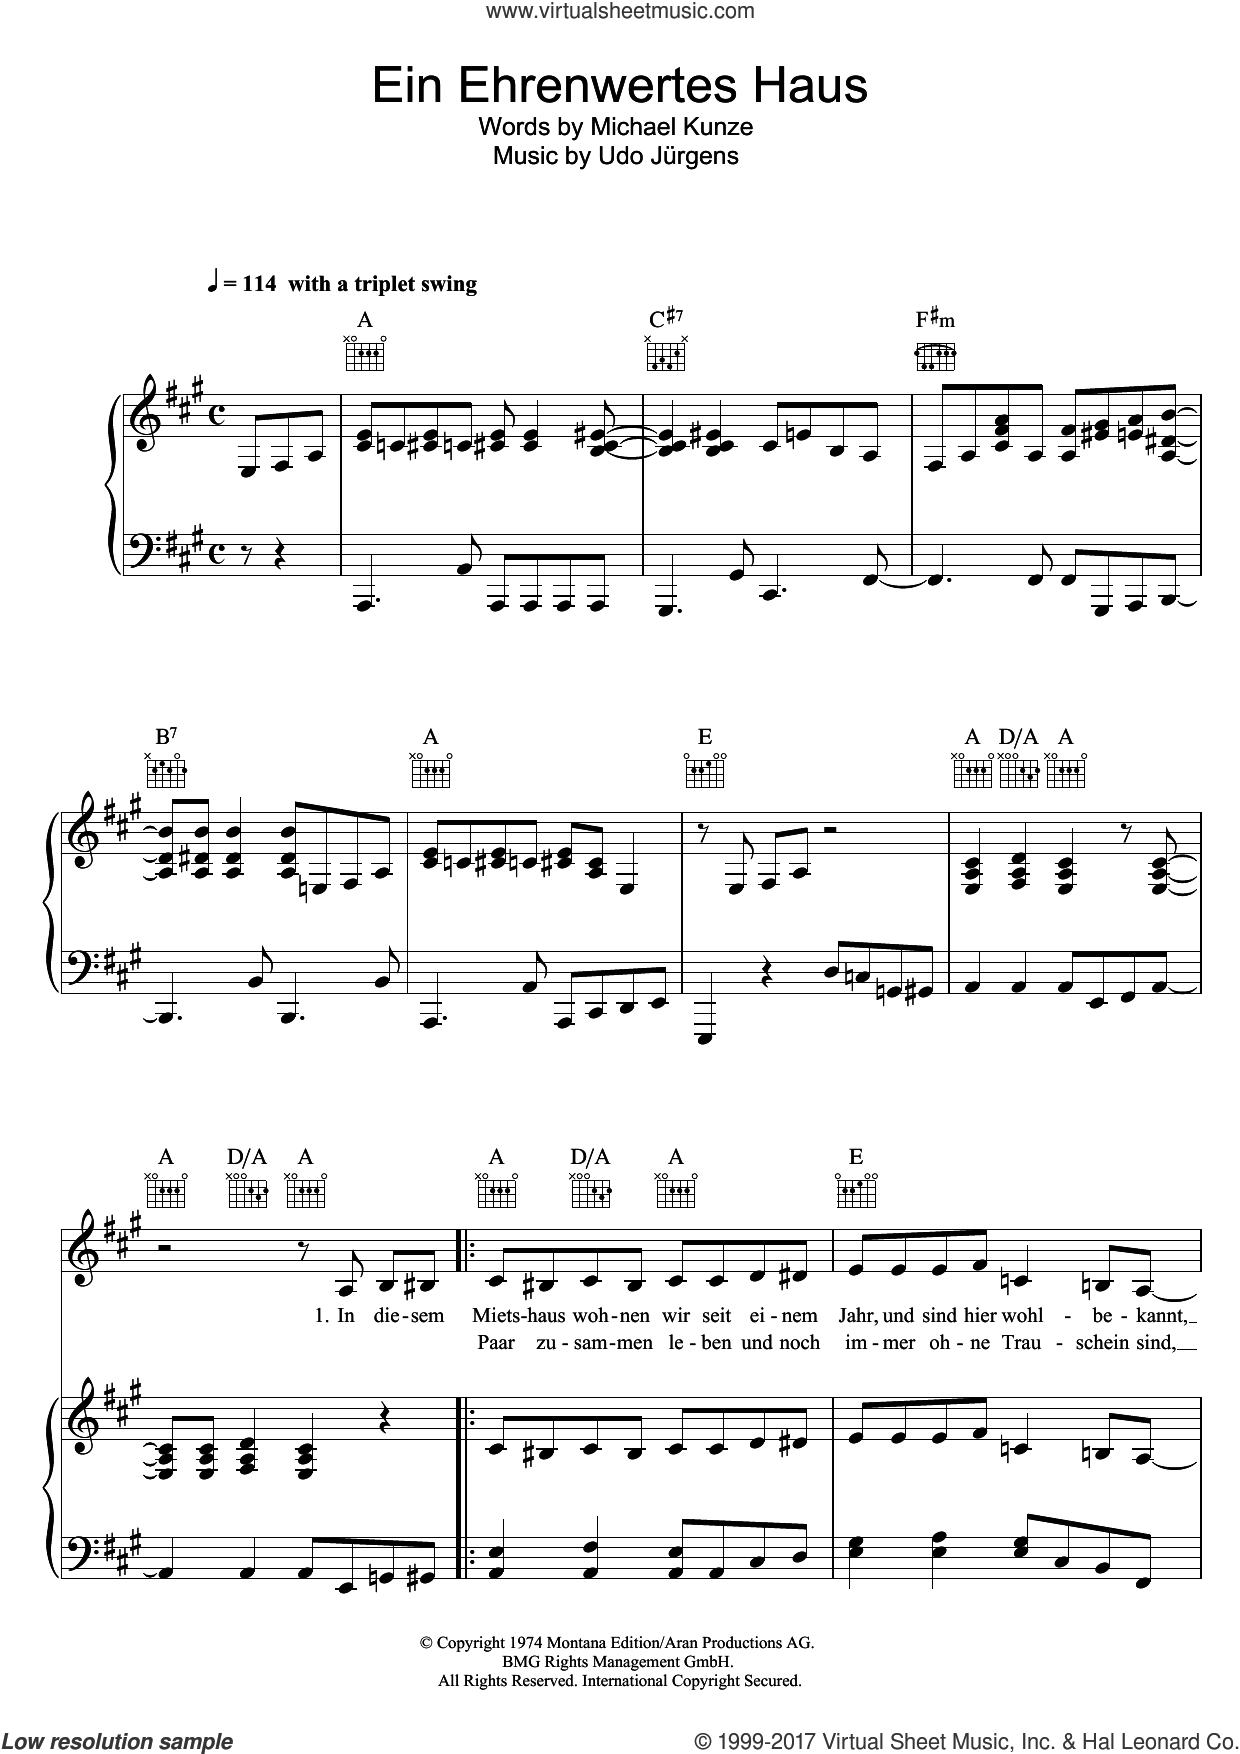 Ein Ehrenwertes Haus sheet music for voice, piano or guitar by Udo Jürgens, intermediate skill level